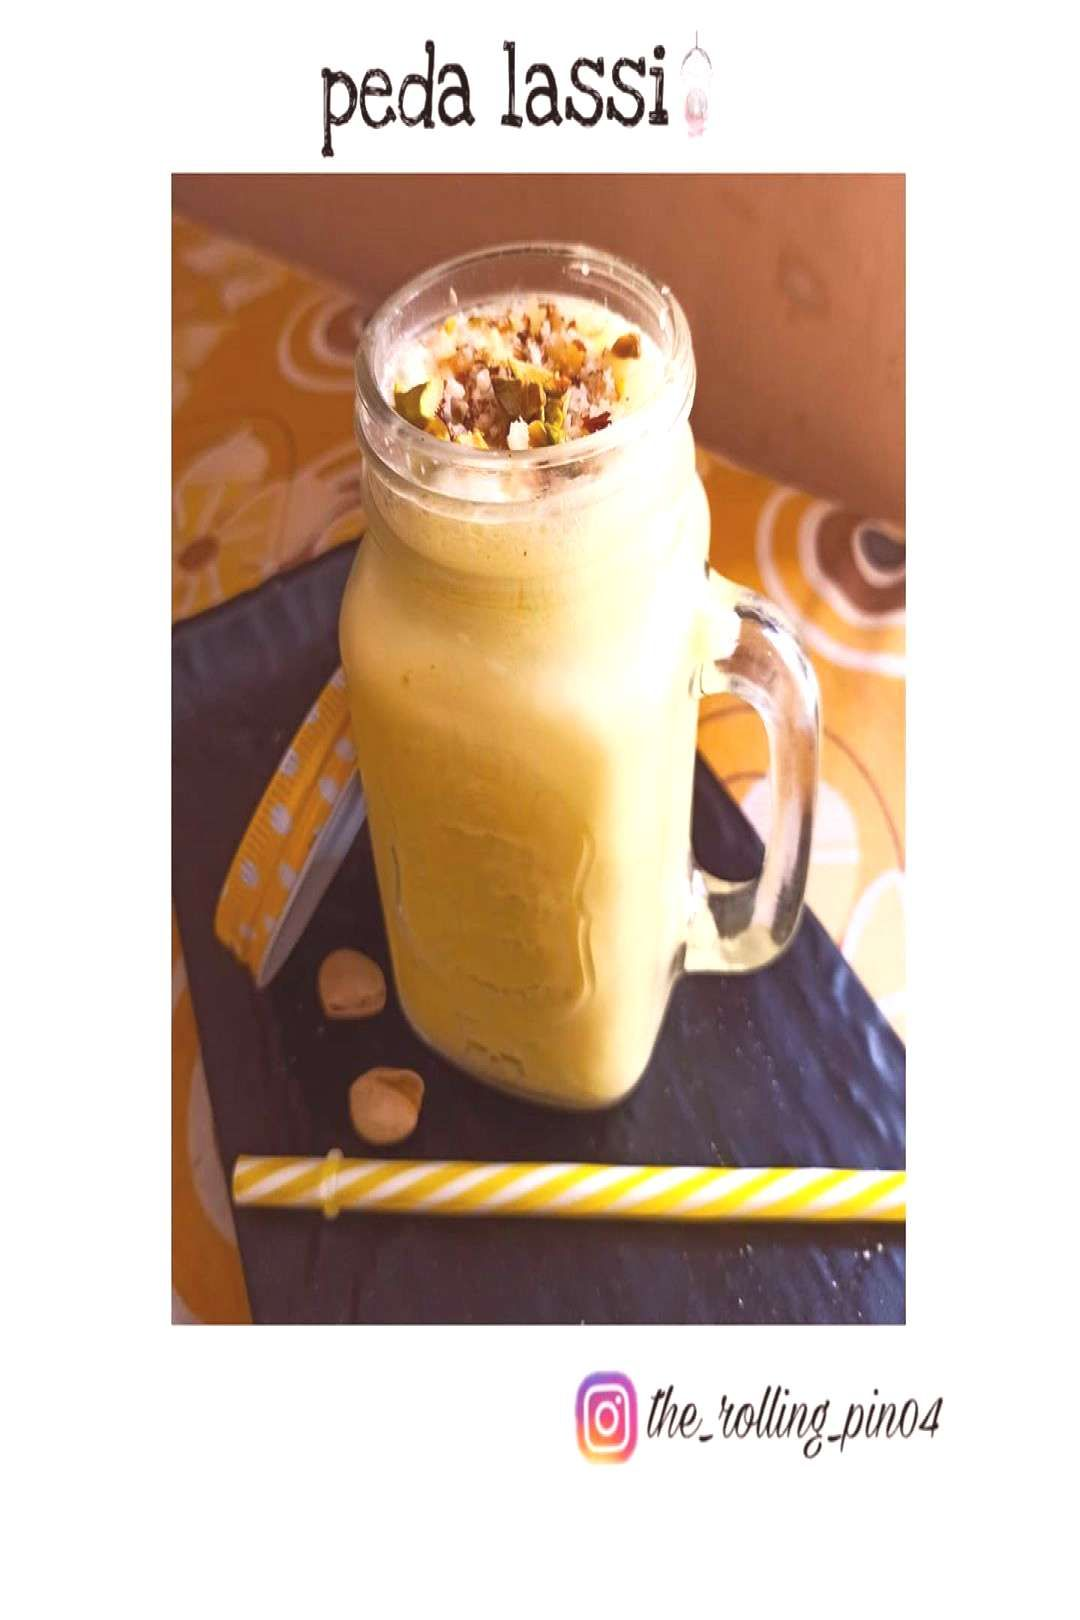 #blending #together #goodness #richness #malai #drink #peda #the #and #of Blending together the goodness and richness of malai peda and theYou can find Refreshing drink and more on our website.Blending together the goodness and richnes...